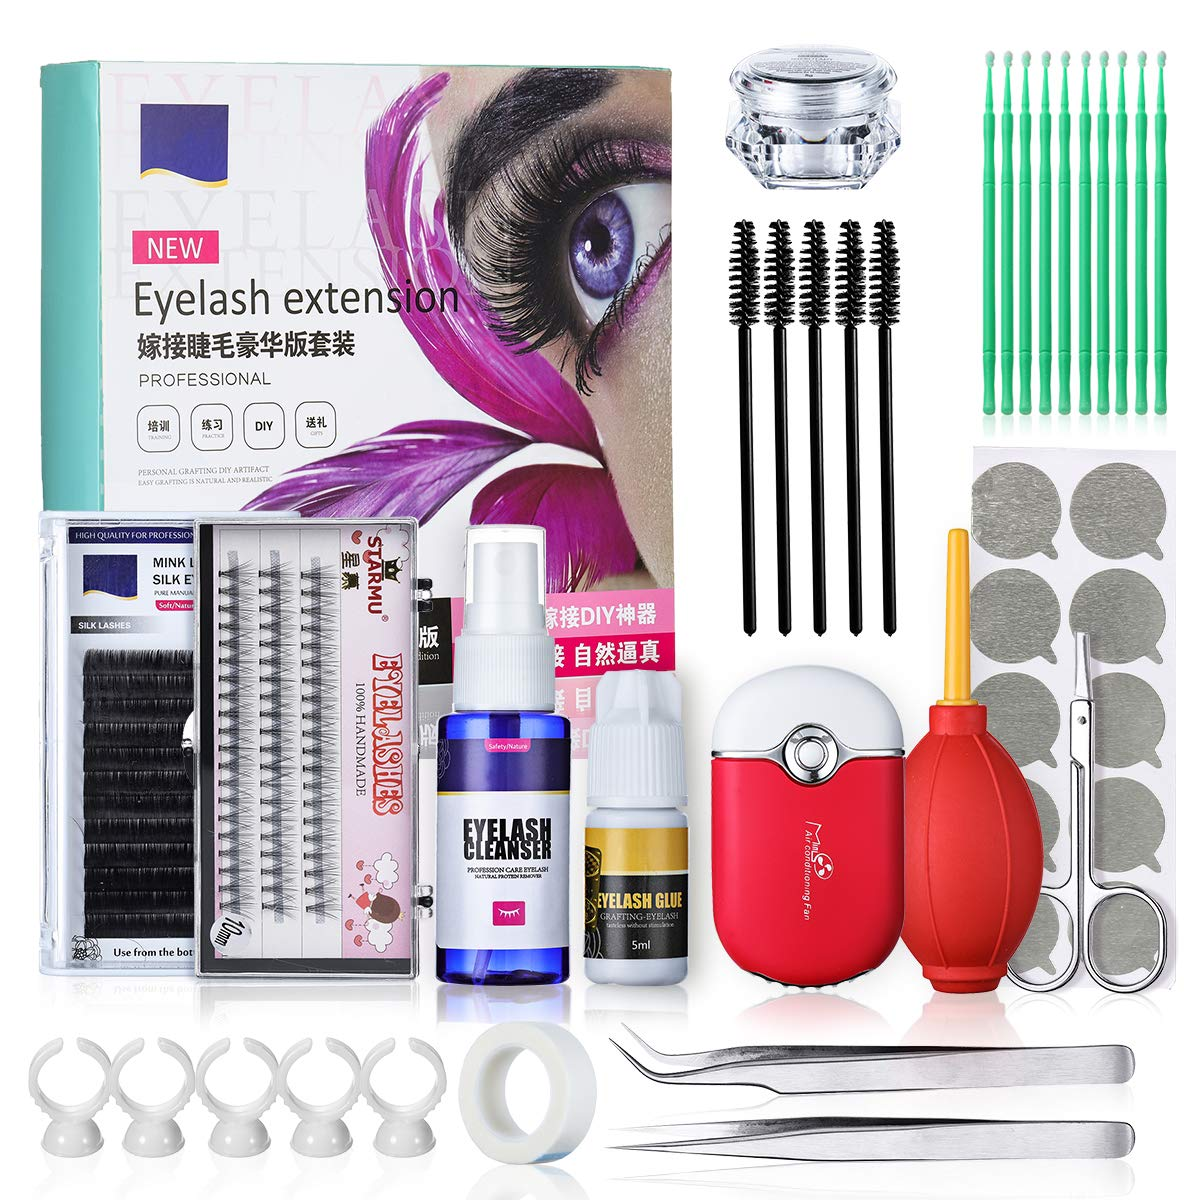 Eyelash Extension Kits, Luckyfine Training MakeUp False Eyelashes Extension Glue Tool Practice Kit for Makeup Practice Eye Lashes Graft with Air Puffer Blower